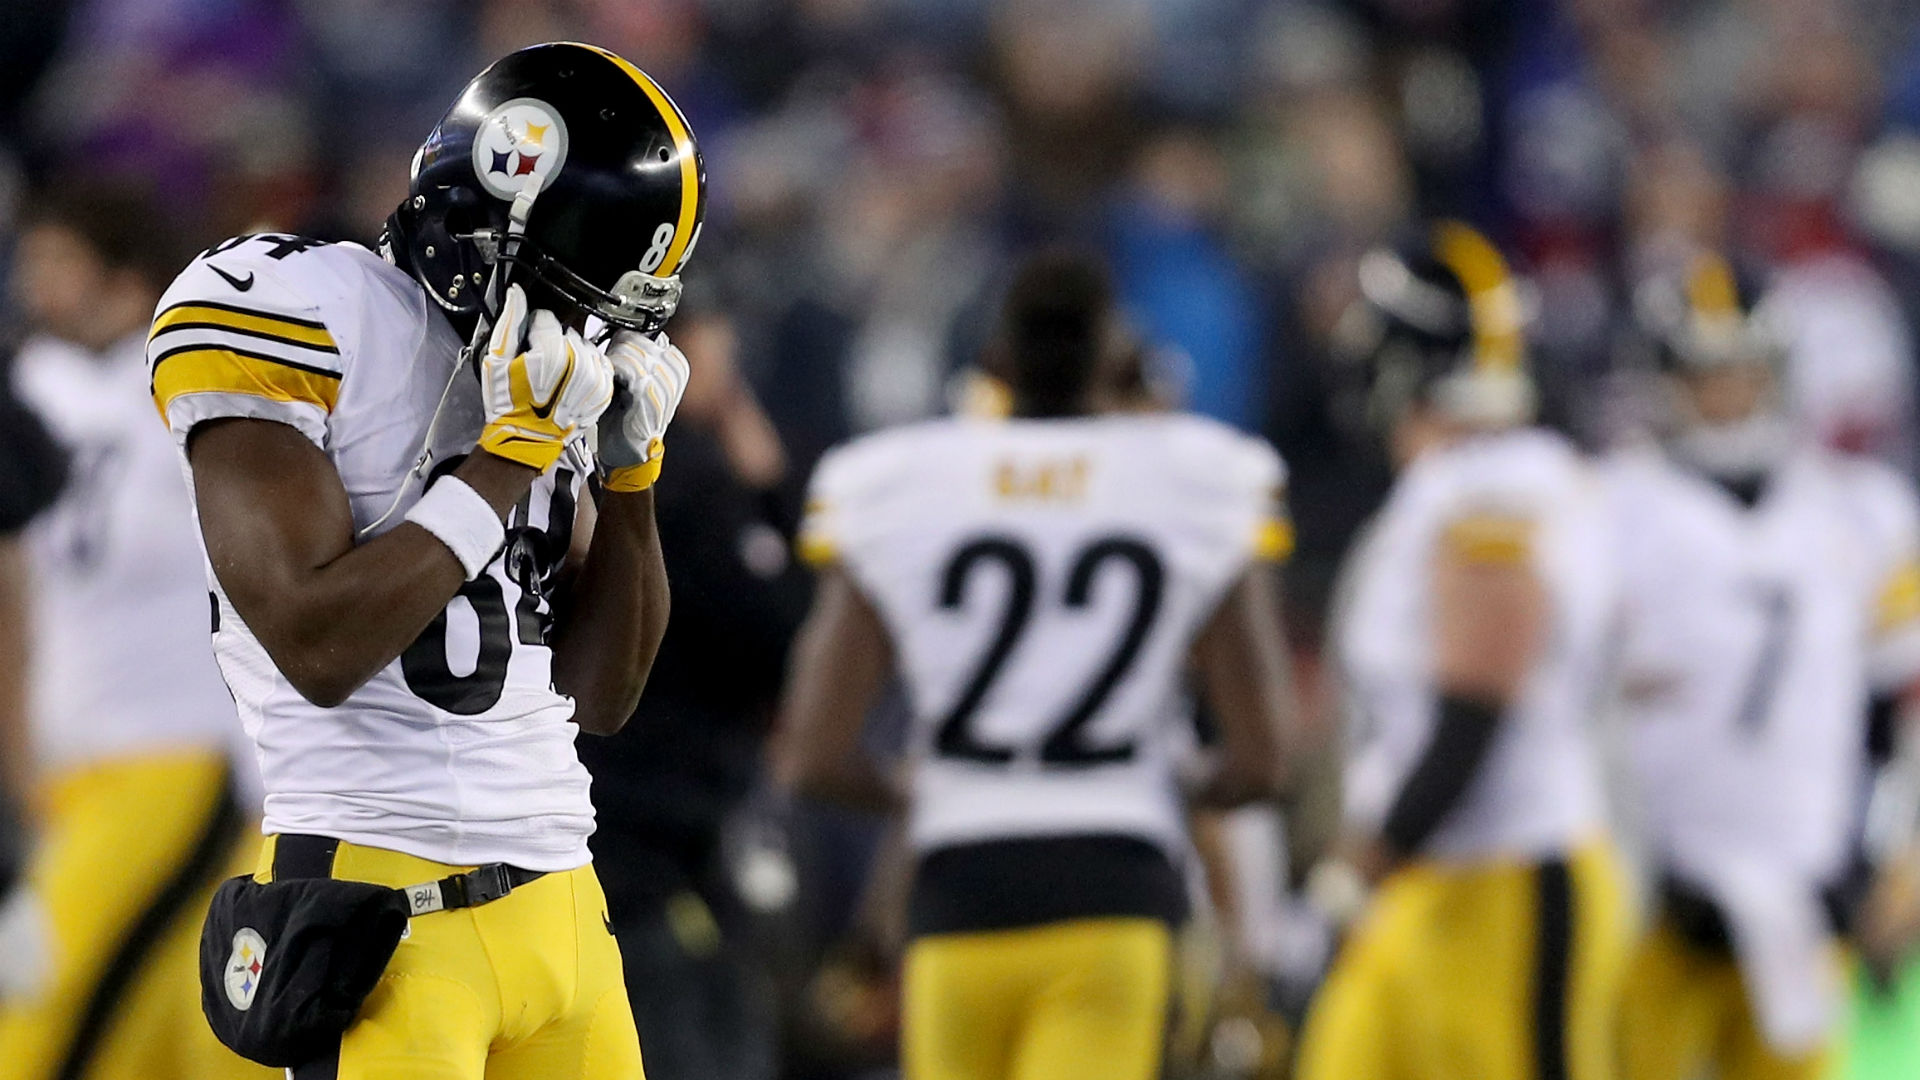 Antonio Brown's locker room video didn't end up costing him much